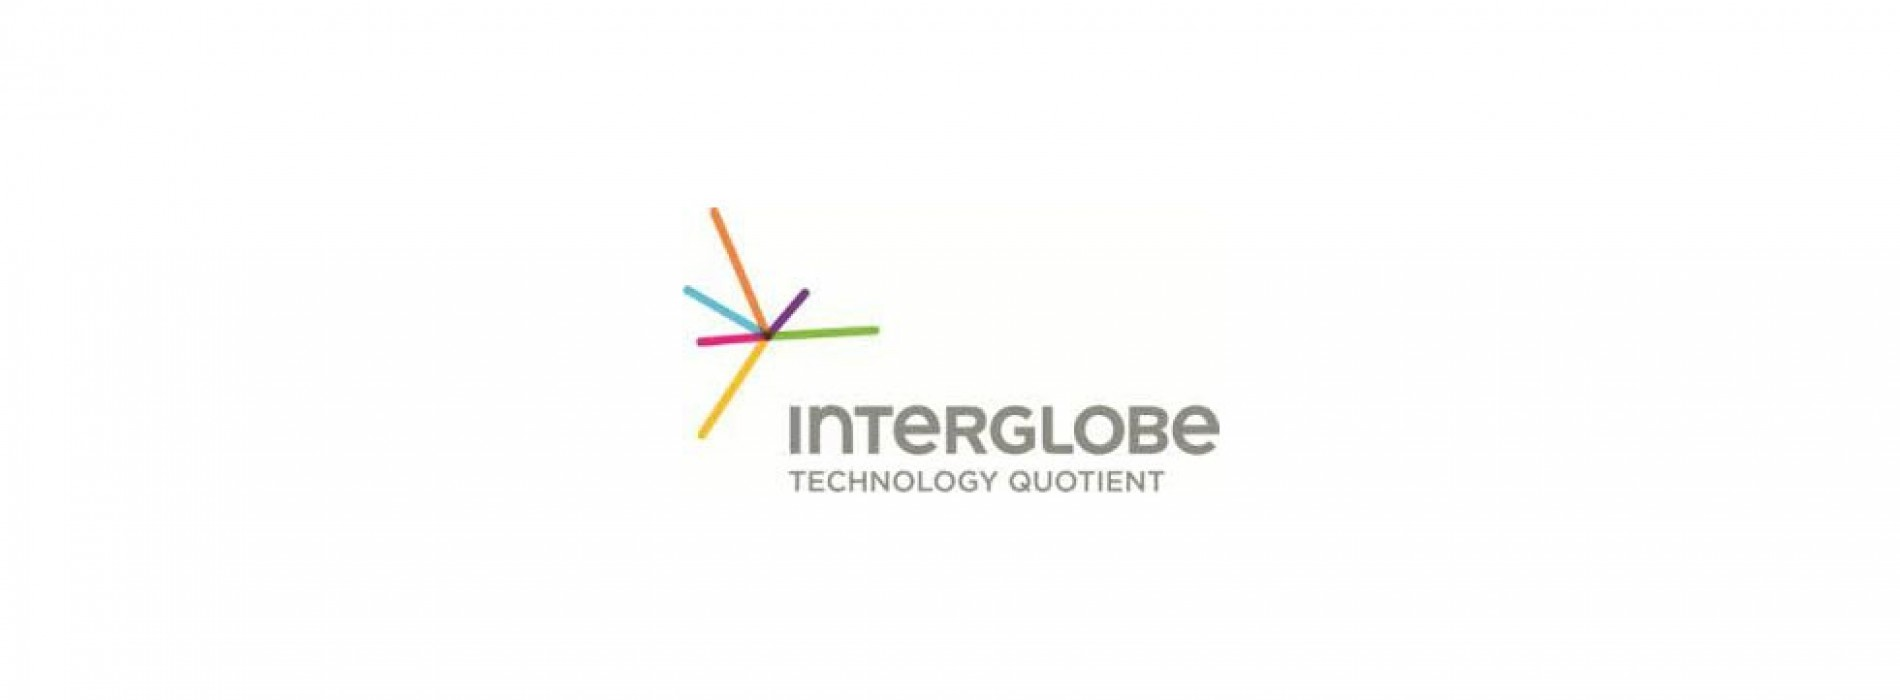 InterGlobe Technology Quotient to showcase at SATTE 2017